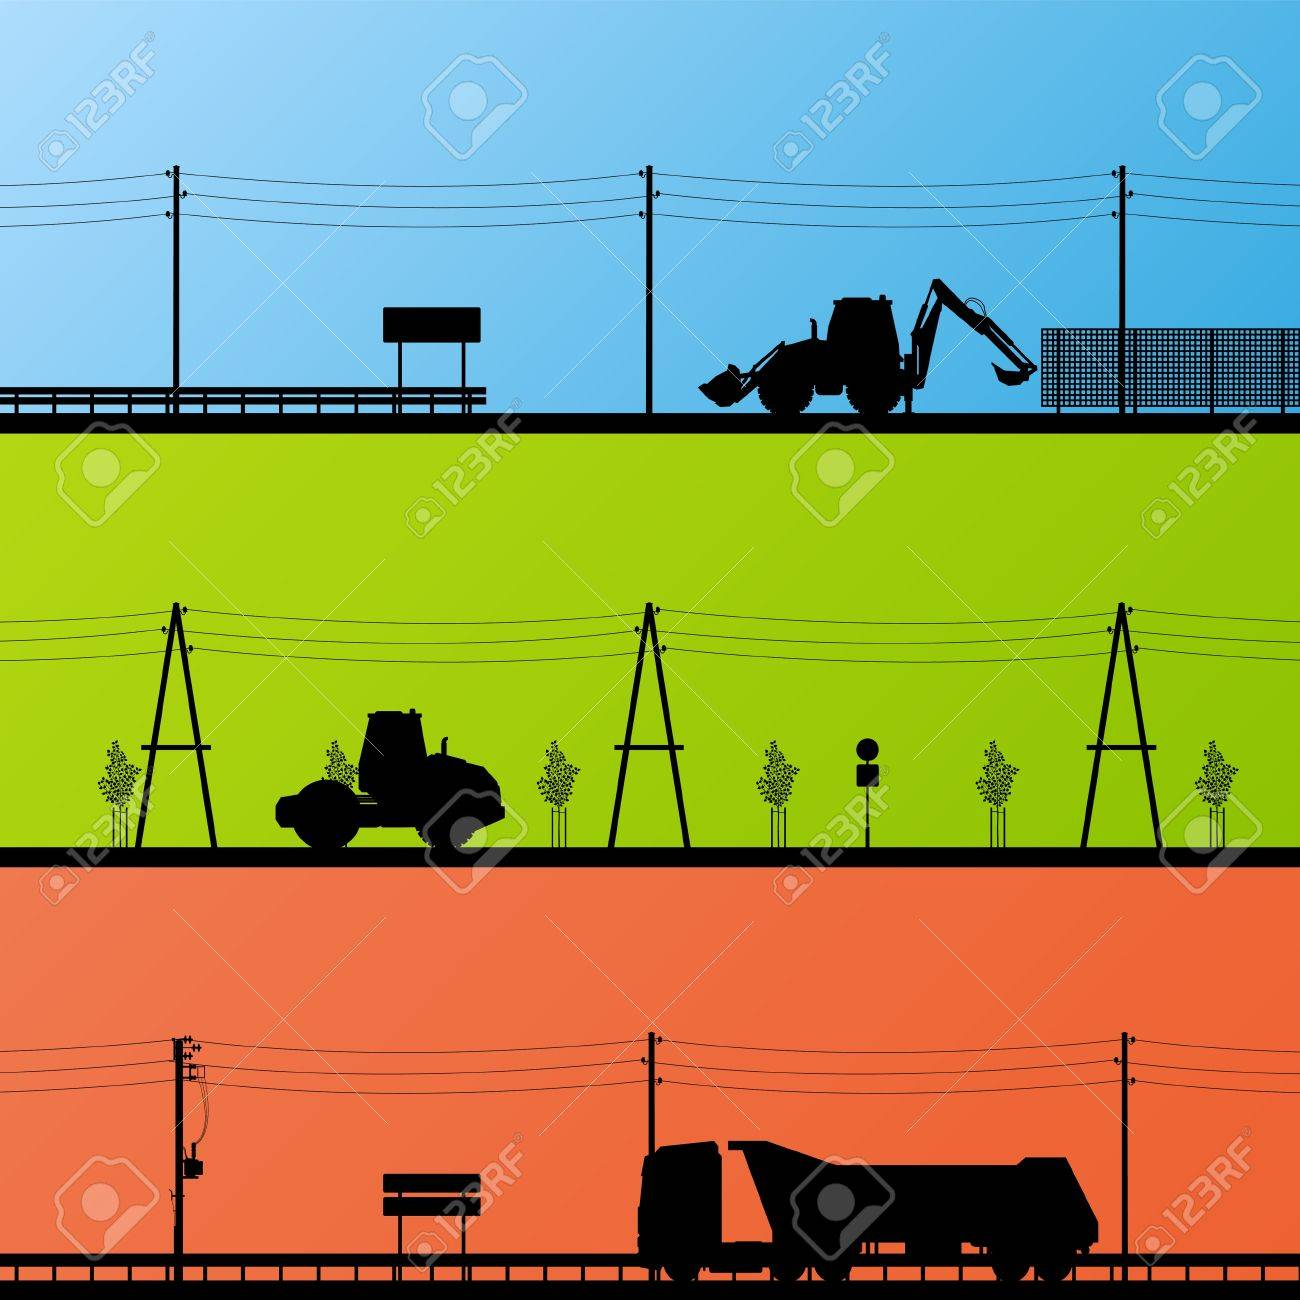 Highway roadway construction site roadwork landscape and heavy duty trucks and tractors detailed silhouettes illustration collection background vector Stock Vector - 16289197